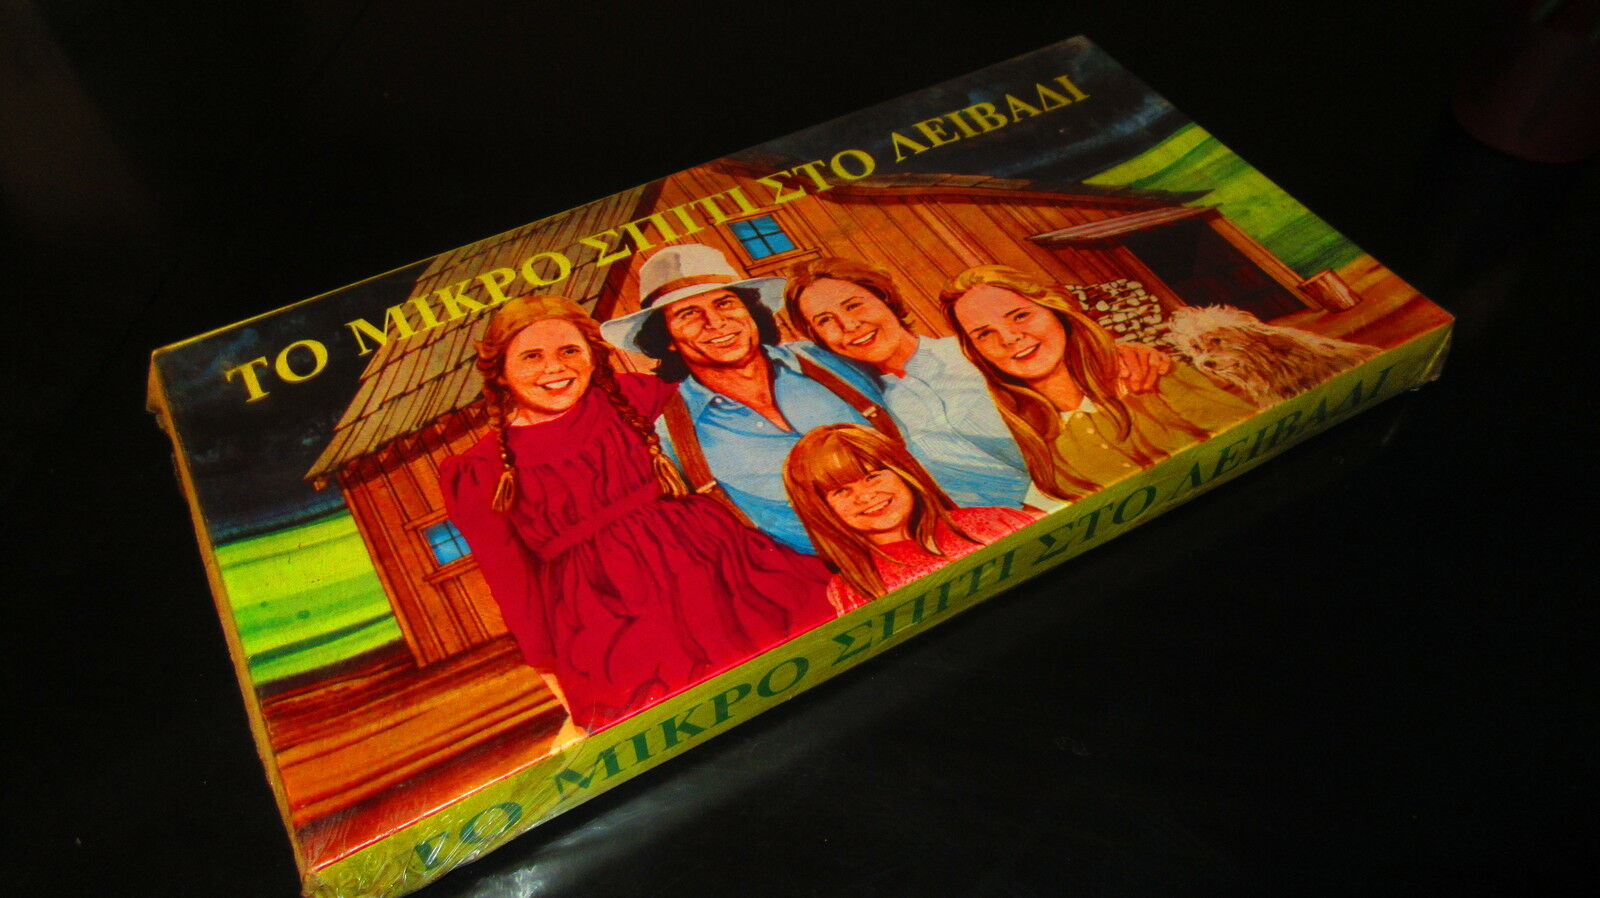 VINTAGE RARE GREEK BOARDGAME - LITTLE HOUSE ON THE PRAIRIE- TV SHOW 70s SEALED